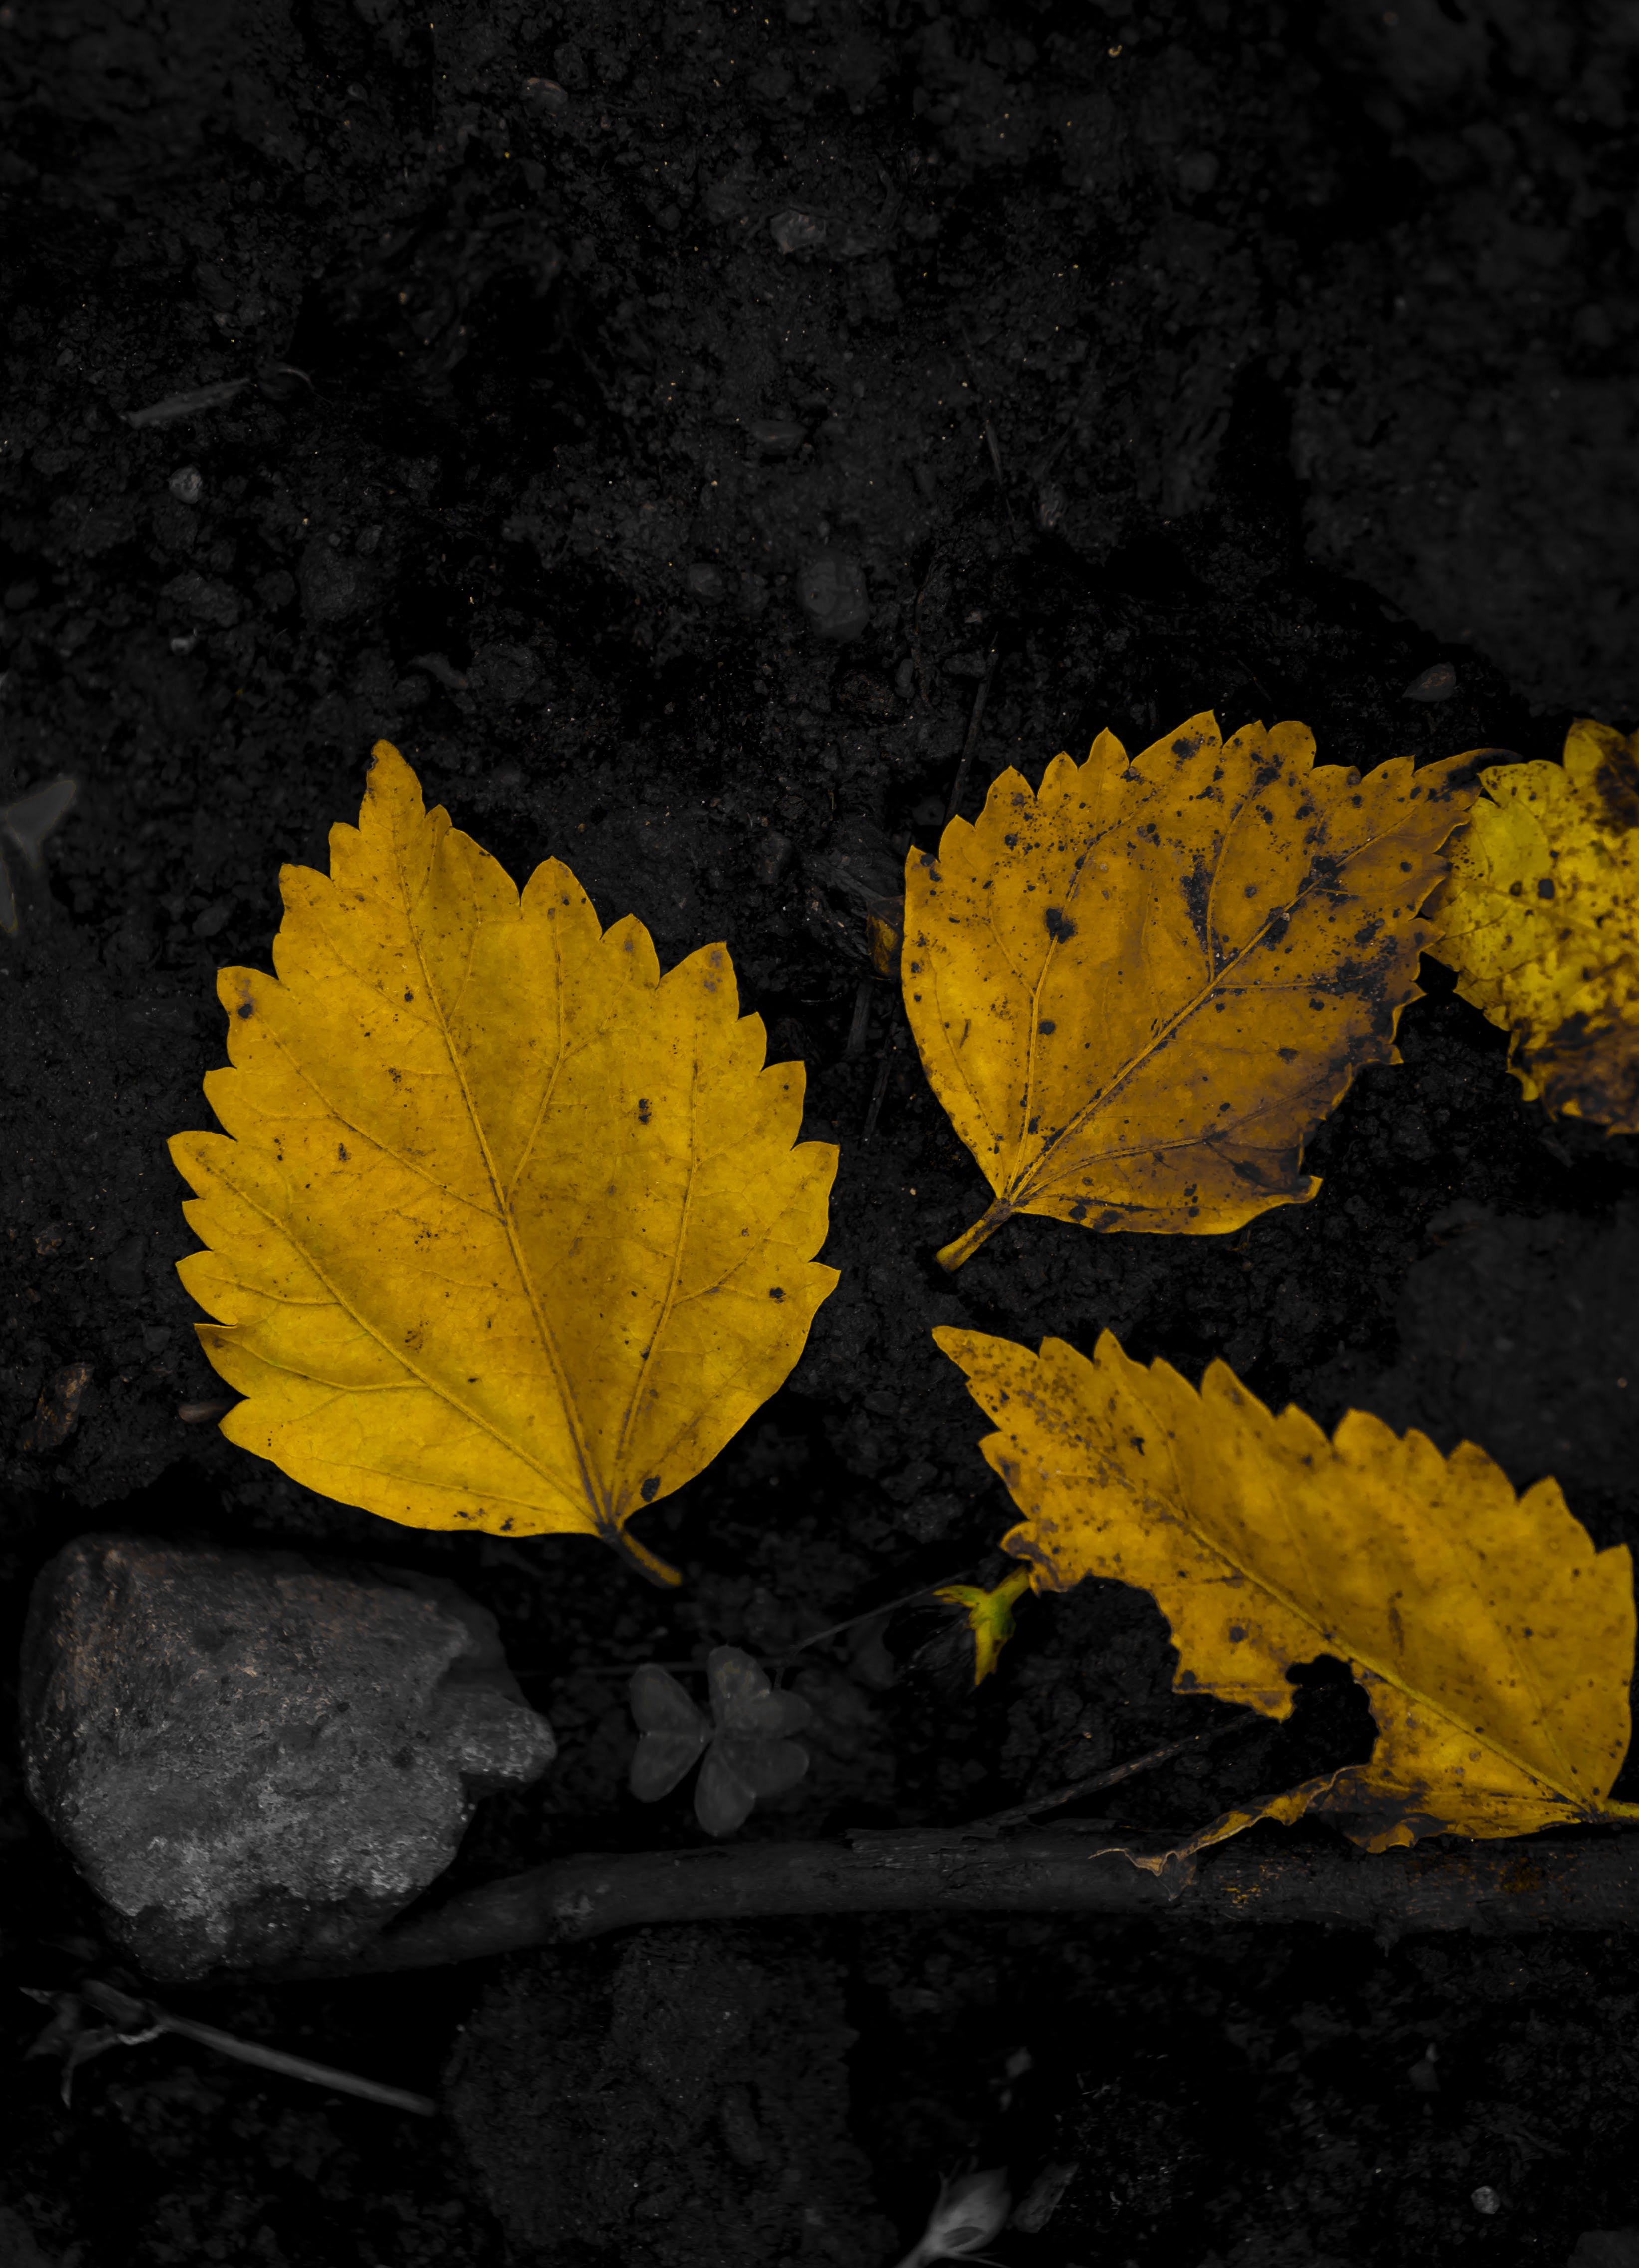 Free stock photo of dried leaves, fall leaves, monochrome, yellow